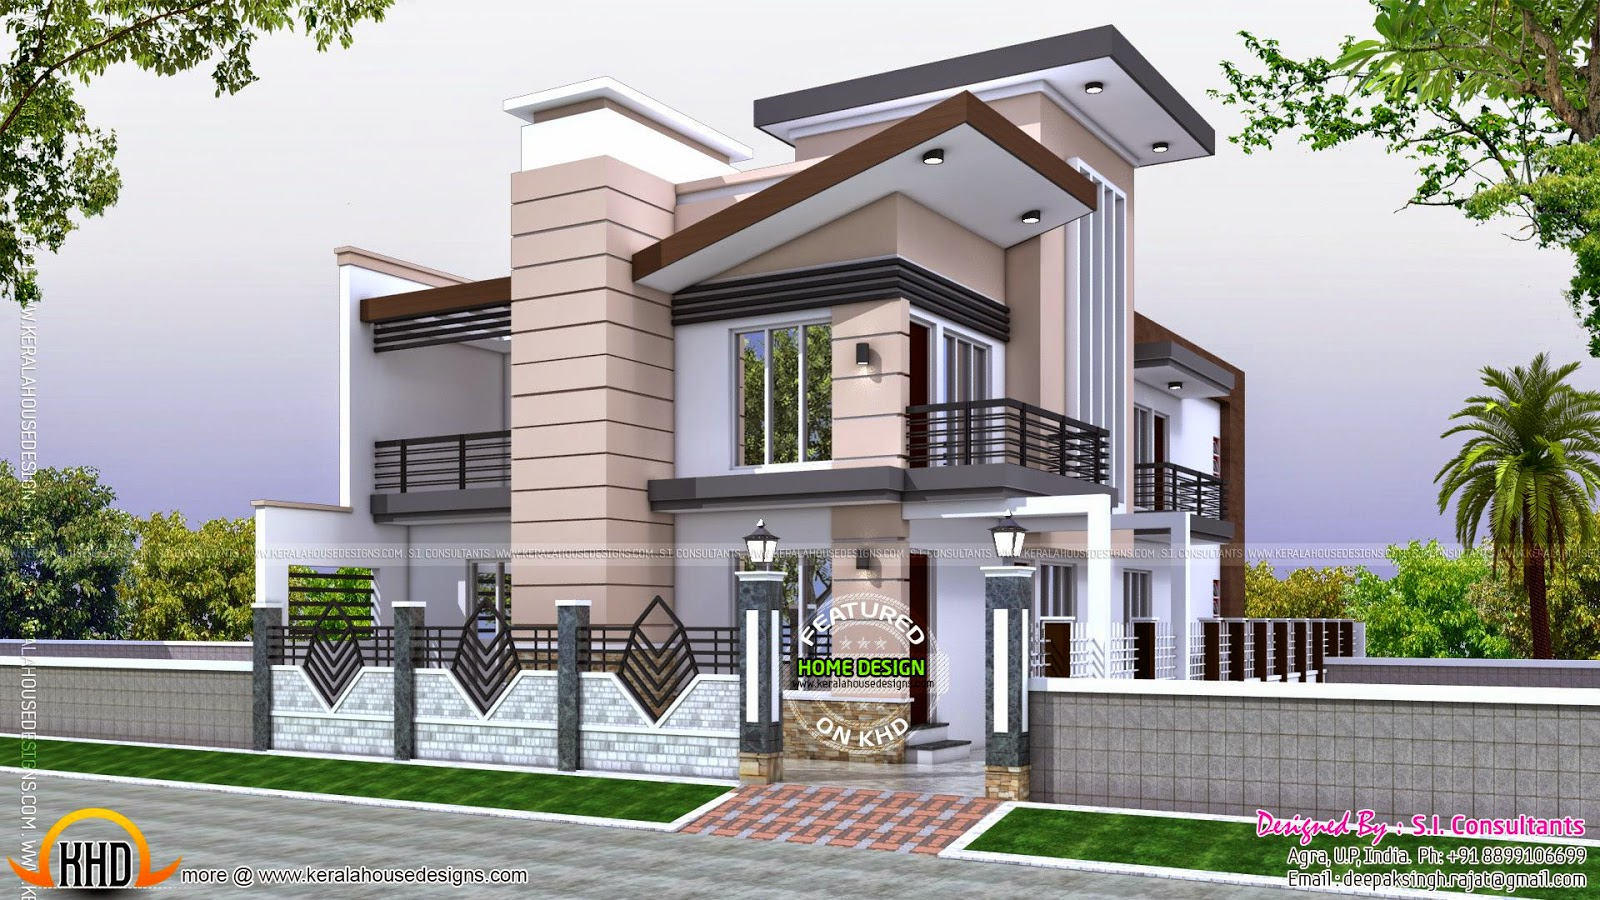 Indian home modern style kerala home design and floor plans for Architectural plans for houses in india